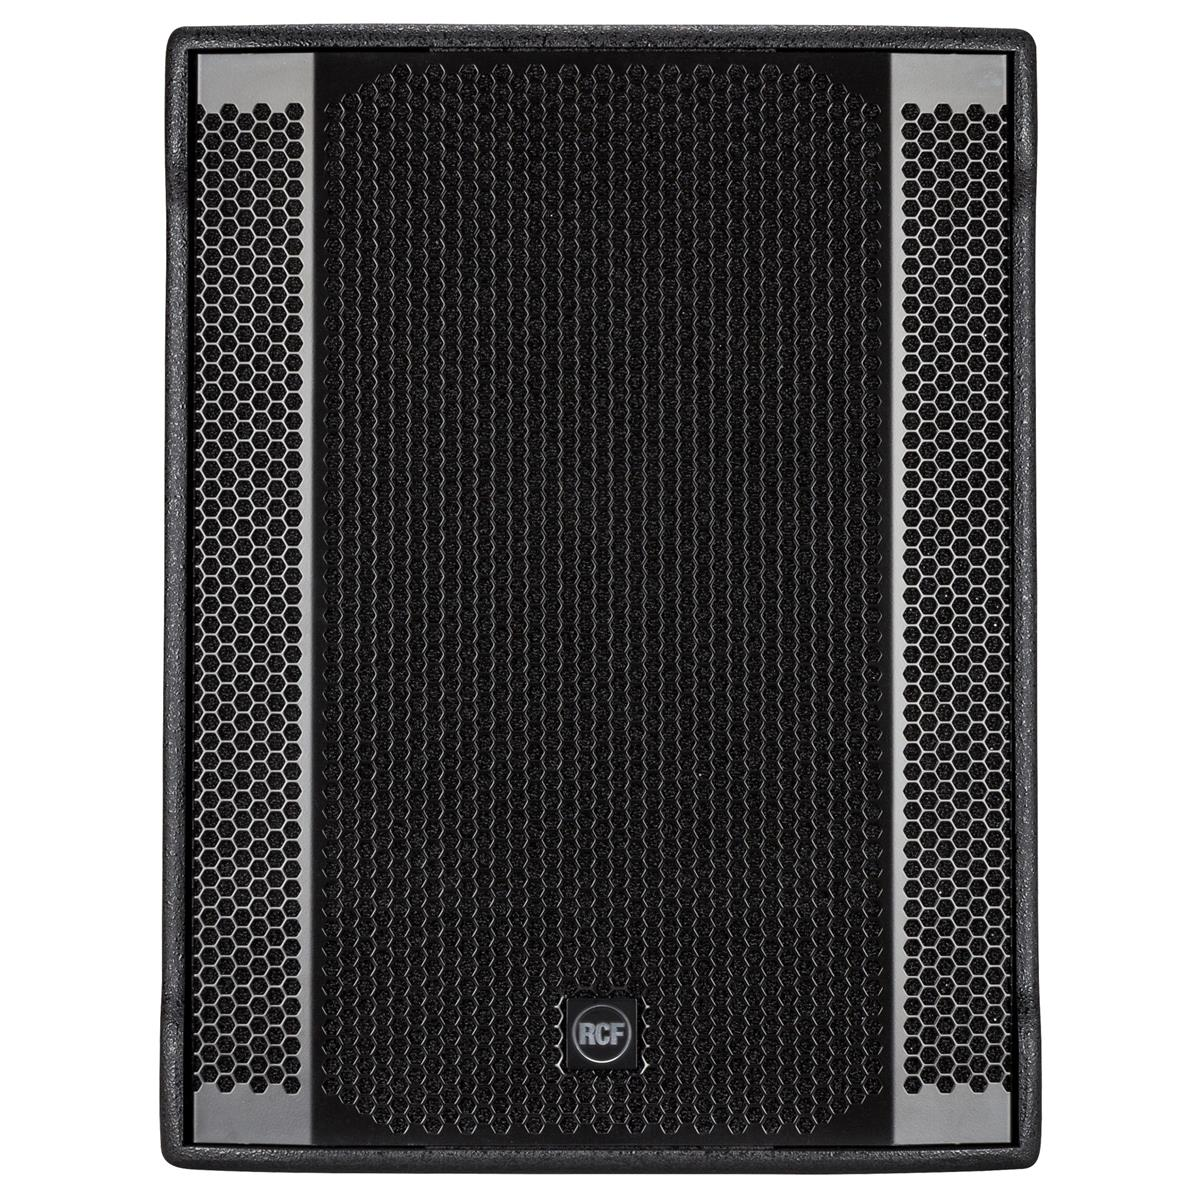 RCF 18in Bass Reflex Active Subwoofer, 700Wrms, 1400peak